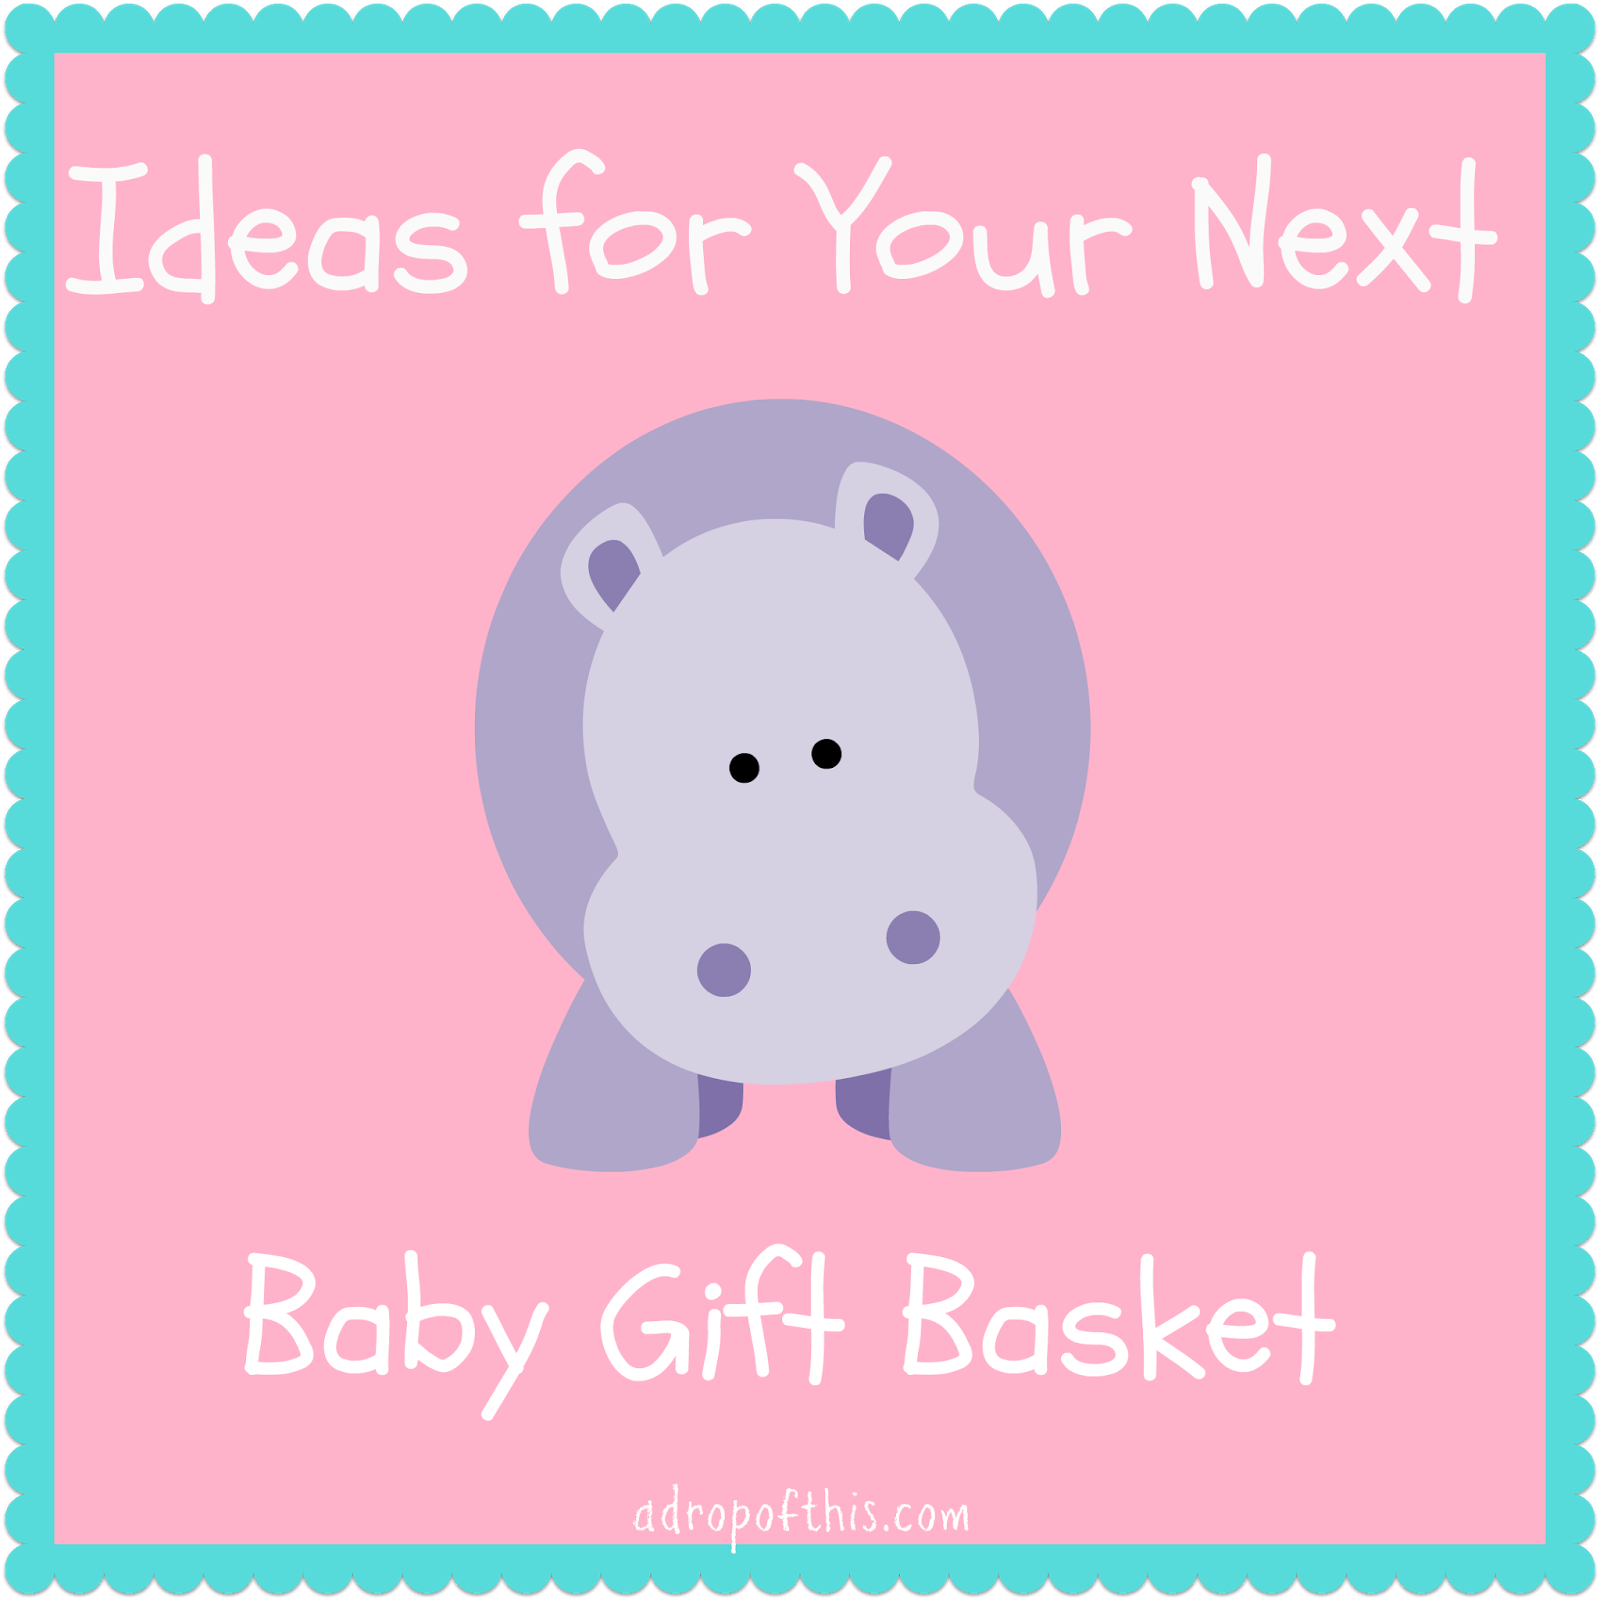 Baby Gift Ideas For Your Sister : A drop of this ideas for your next baby gift basket